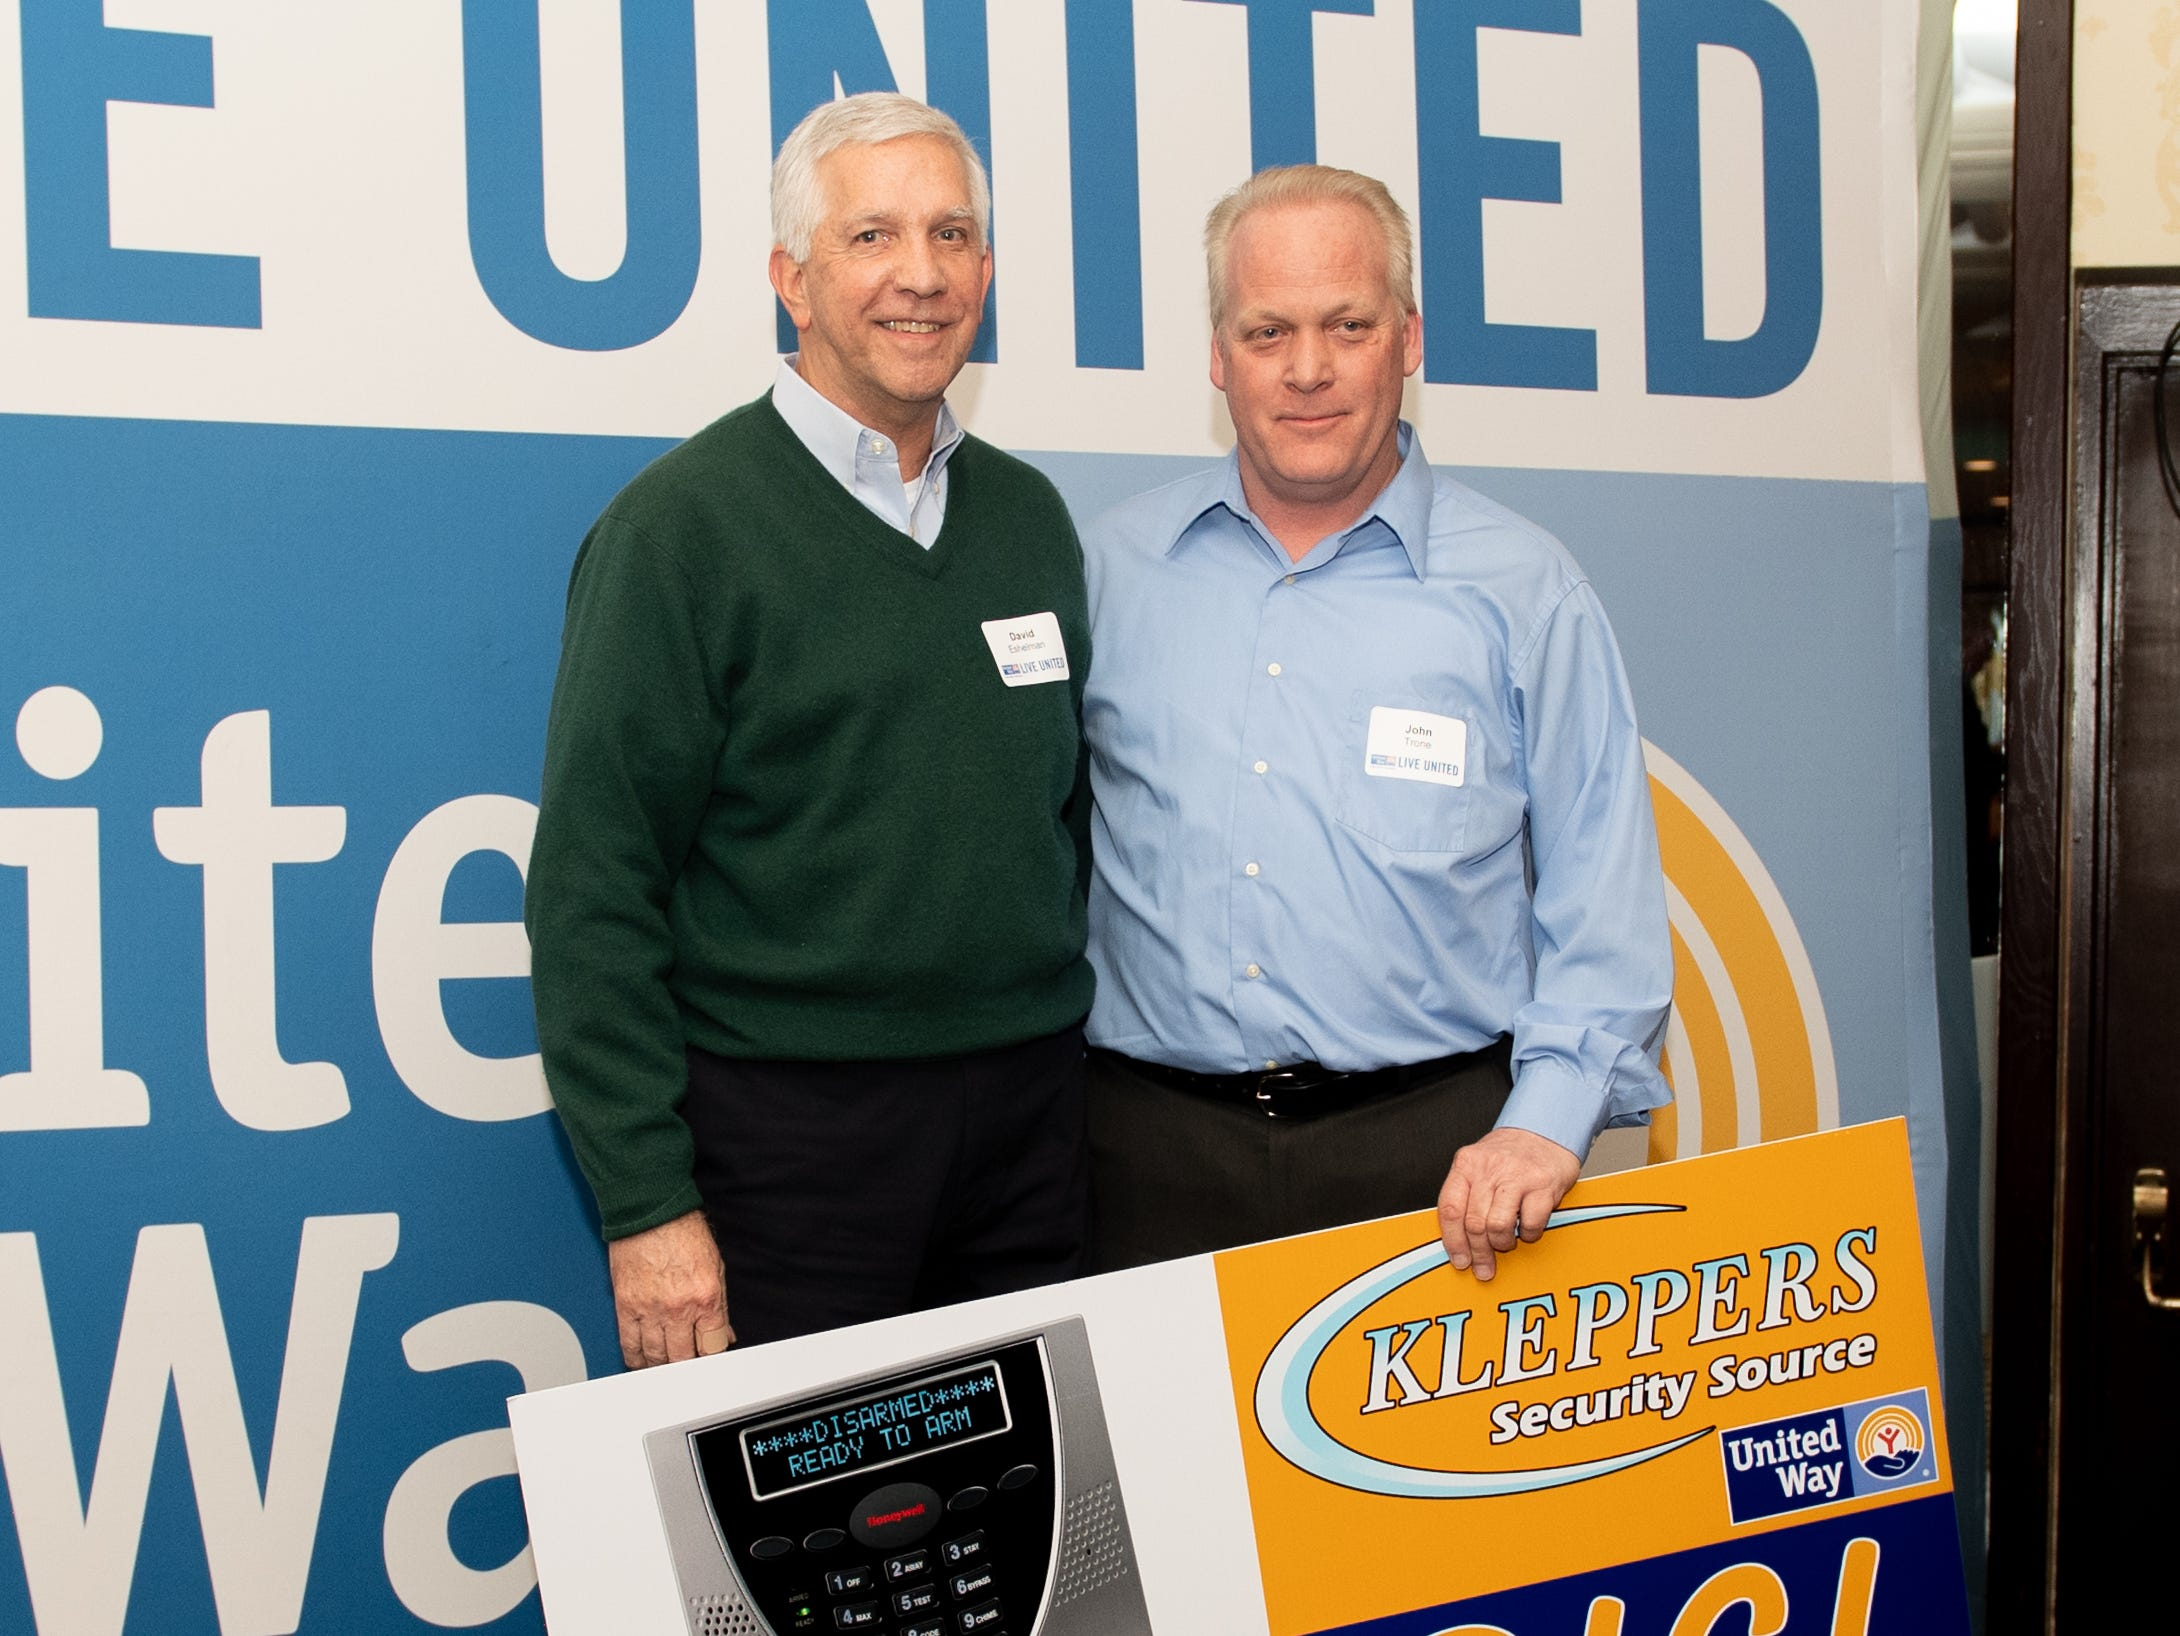 David Eshelman of ACCO Material Handling Solutions (left) won a $1,500 security system during the 2018 United Way Campaign Celebration, February 7, 2019.